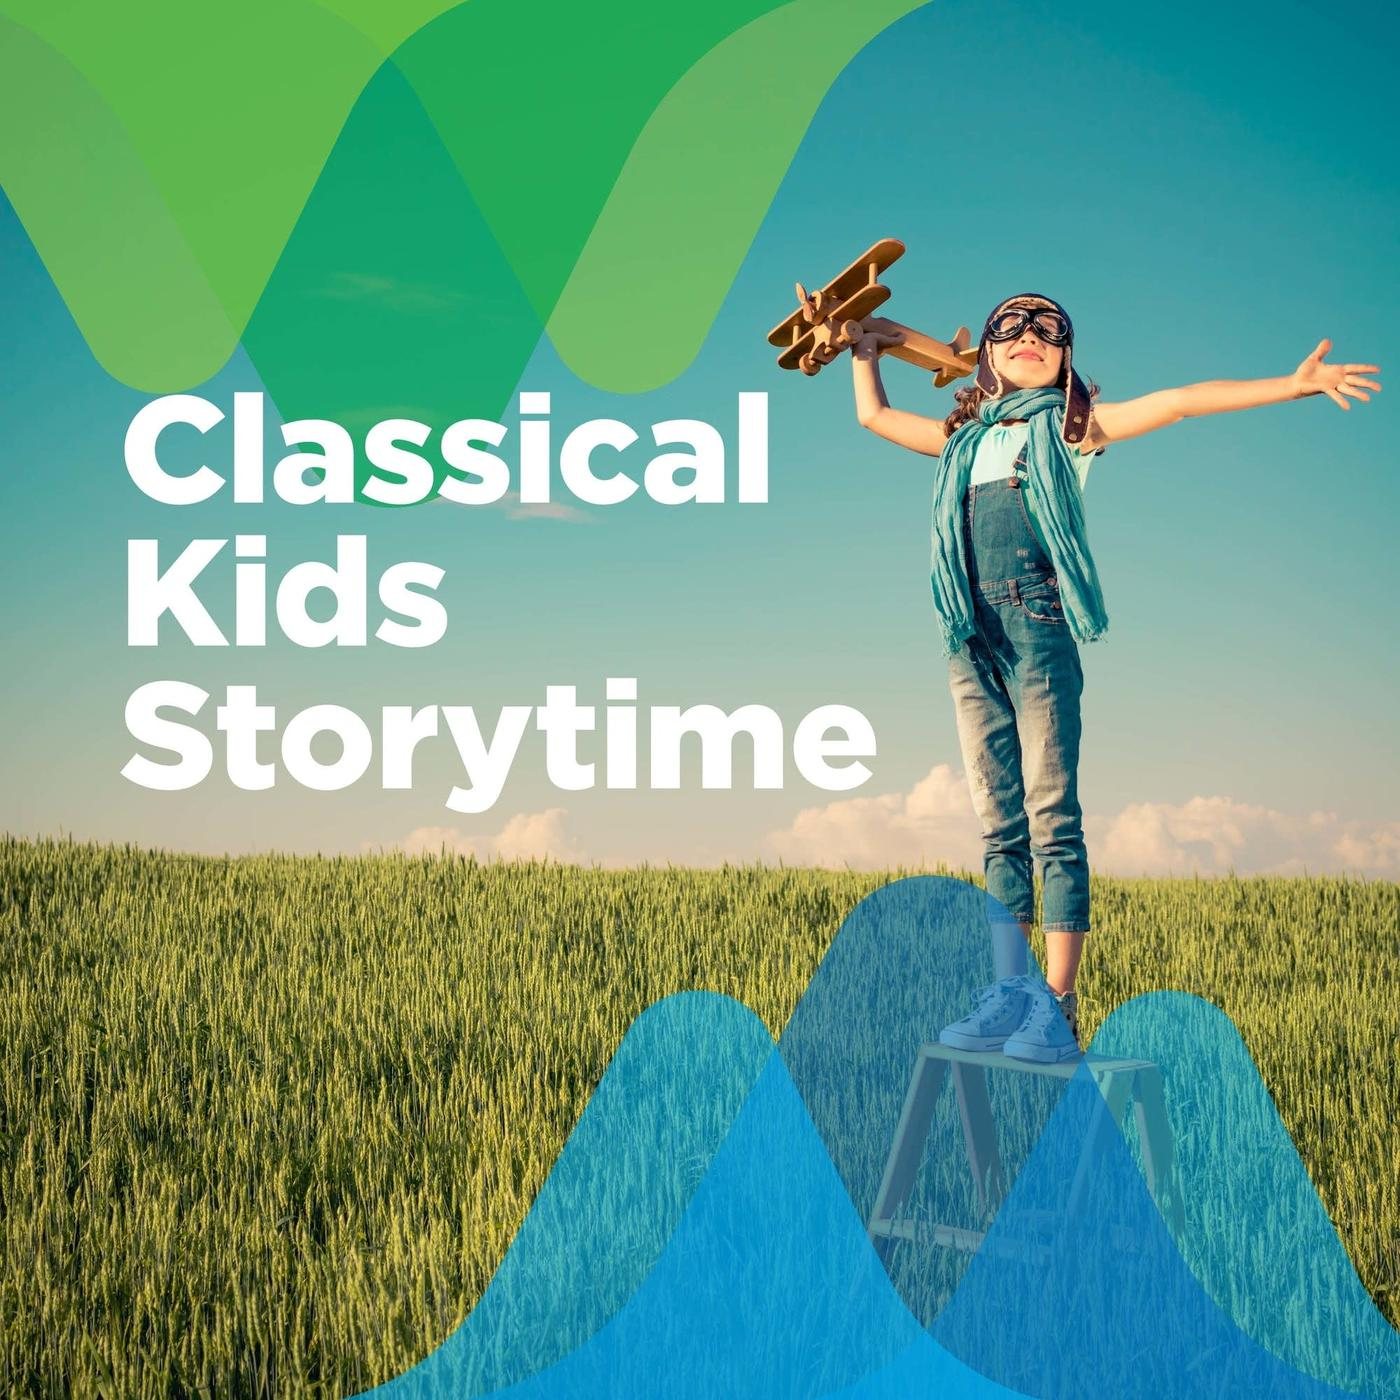 Classical Storytime